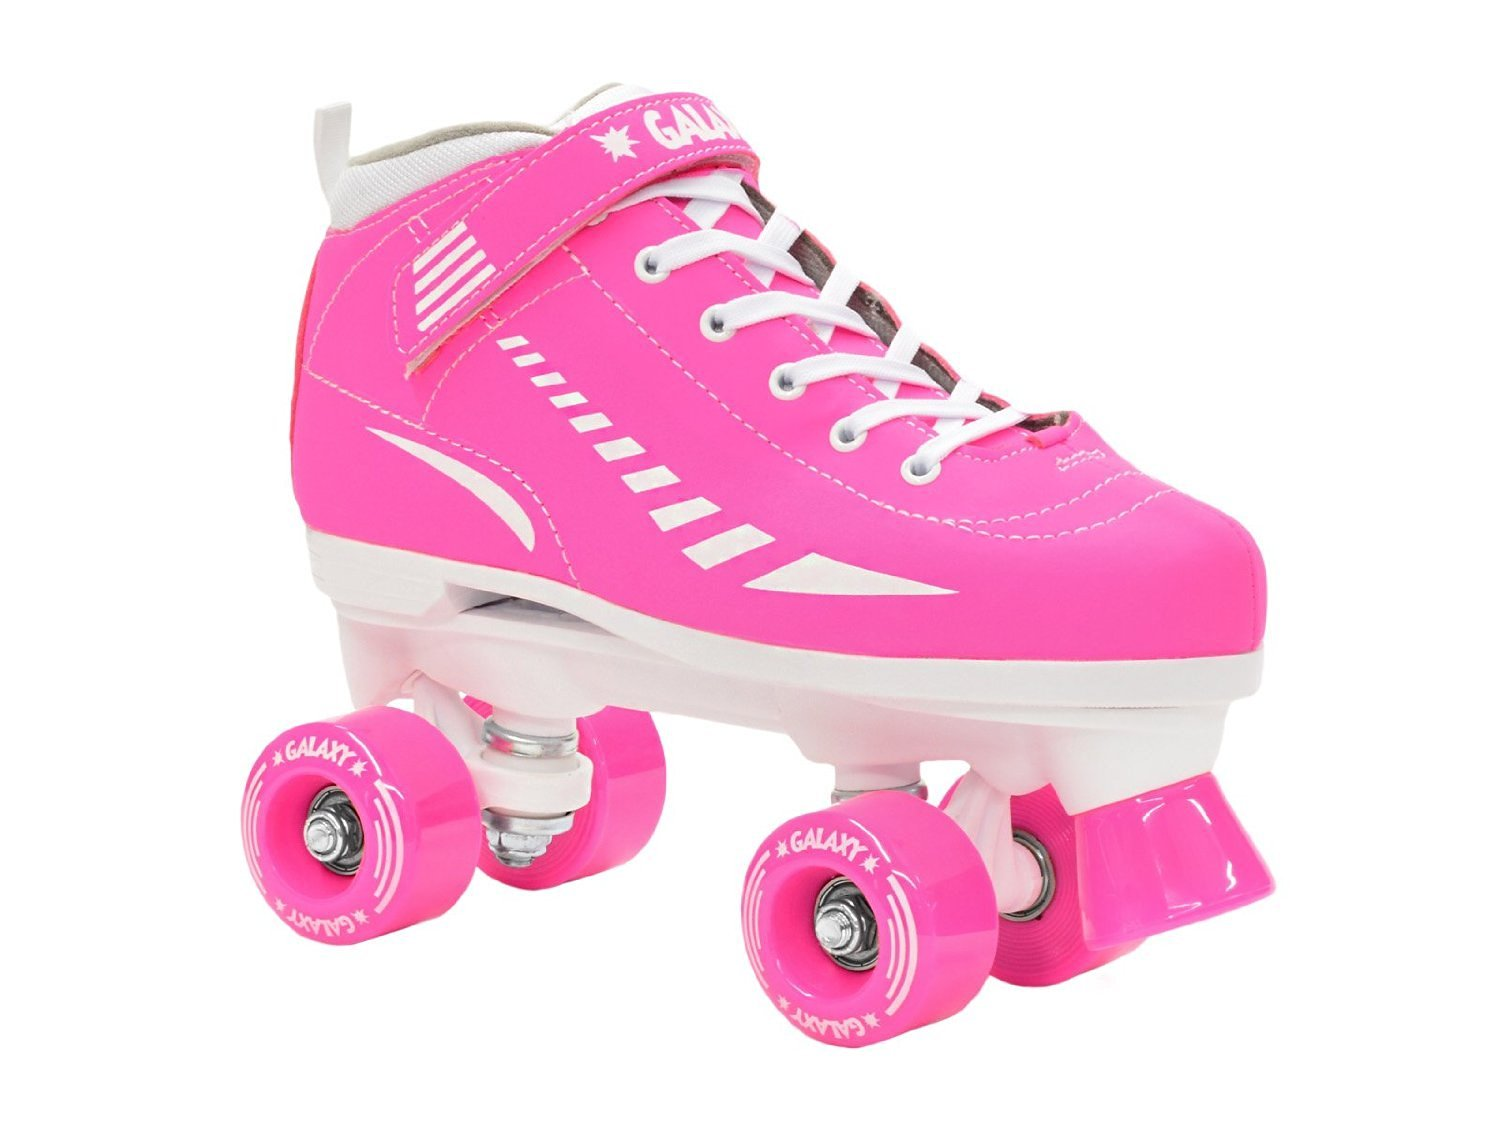 New 2015 Epic Galaxy Elite Neon Pink Indoor Outdoor Quad Roller Speed Skates w/ 2 Pair of Laces (Pink & White)